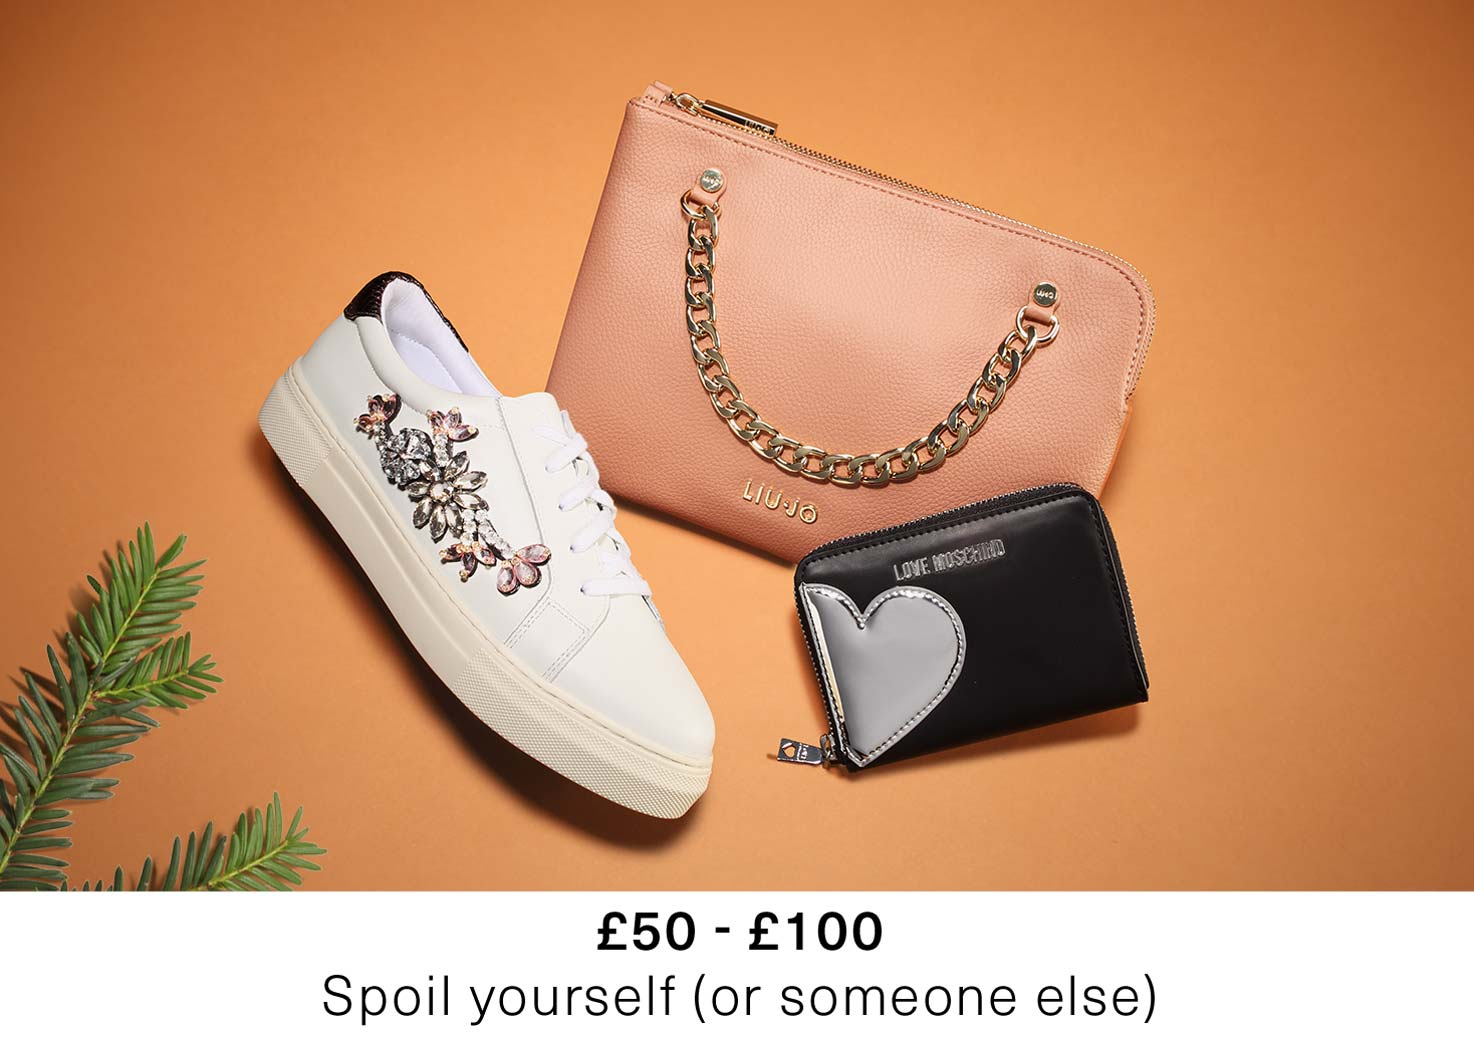 £50 - £100: Spoil yourself (or someone else)